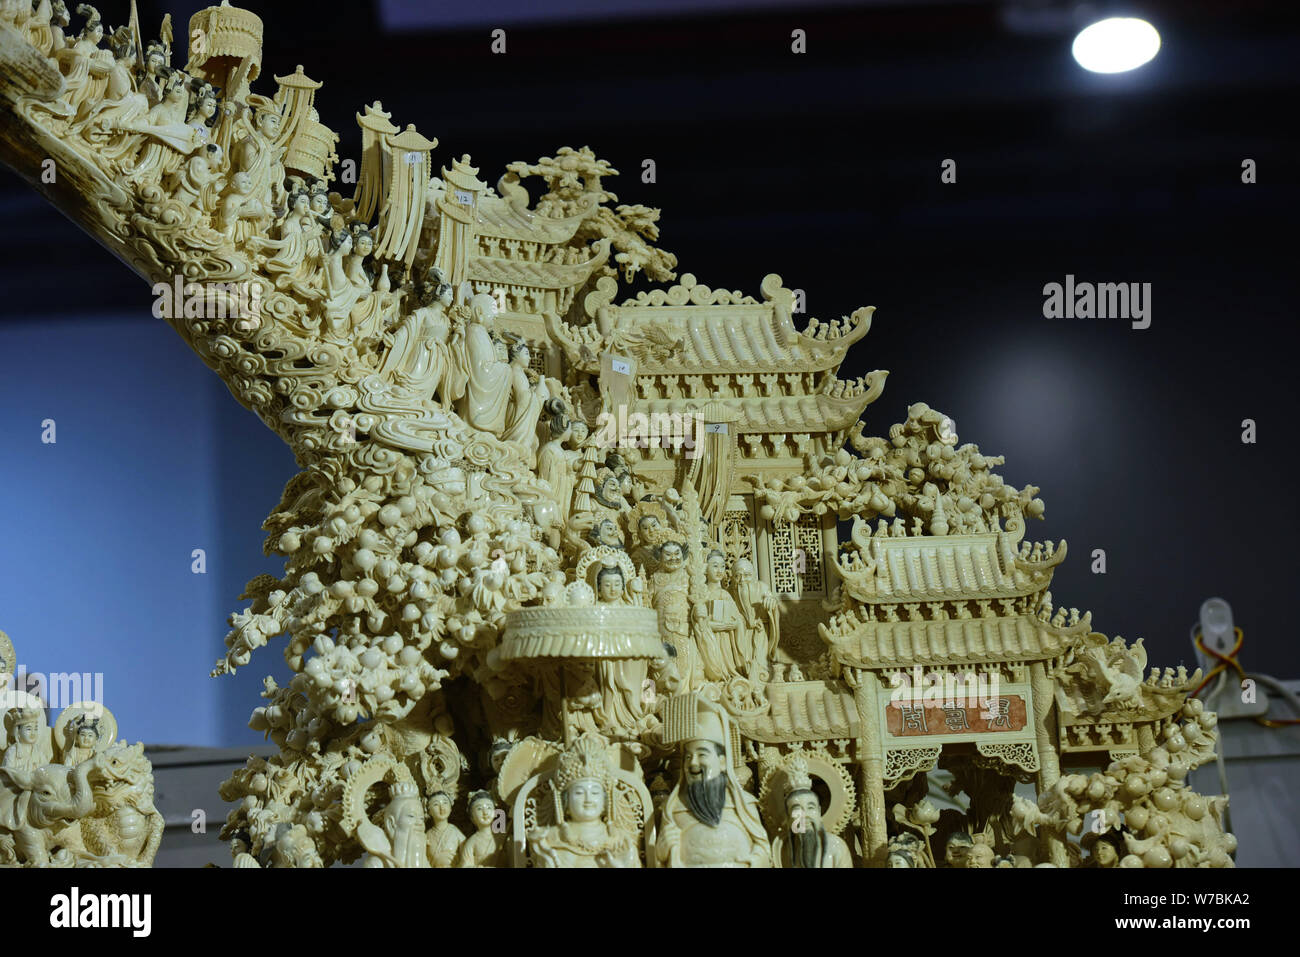 Mammoth Ivory Stock Photos & Mammoth Ivory Stock Images - Alamy